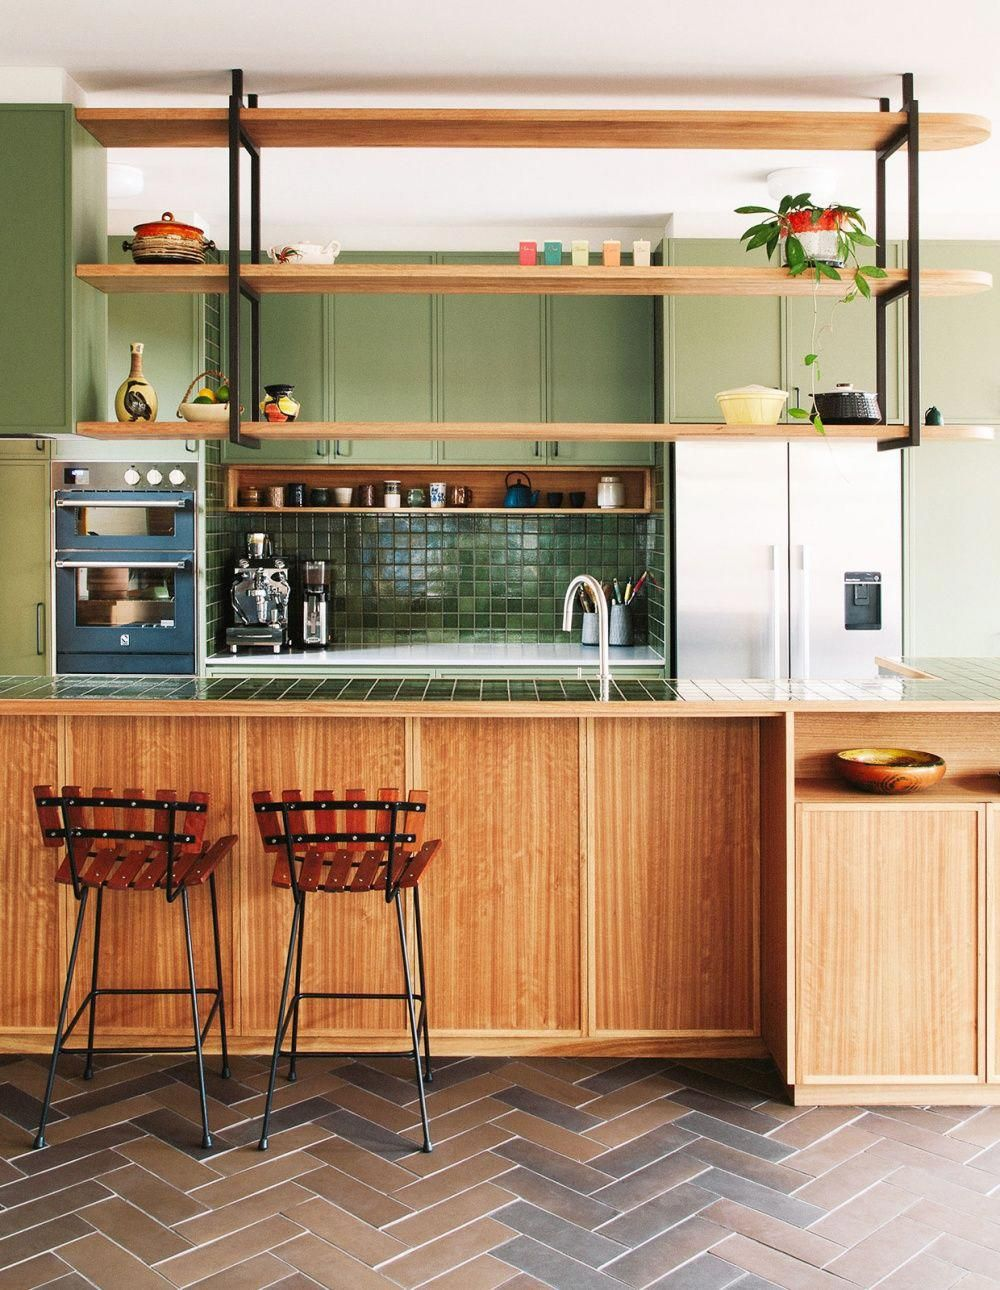 Mid century design meets modern accessibility in